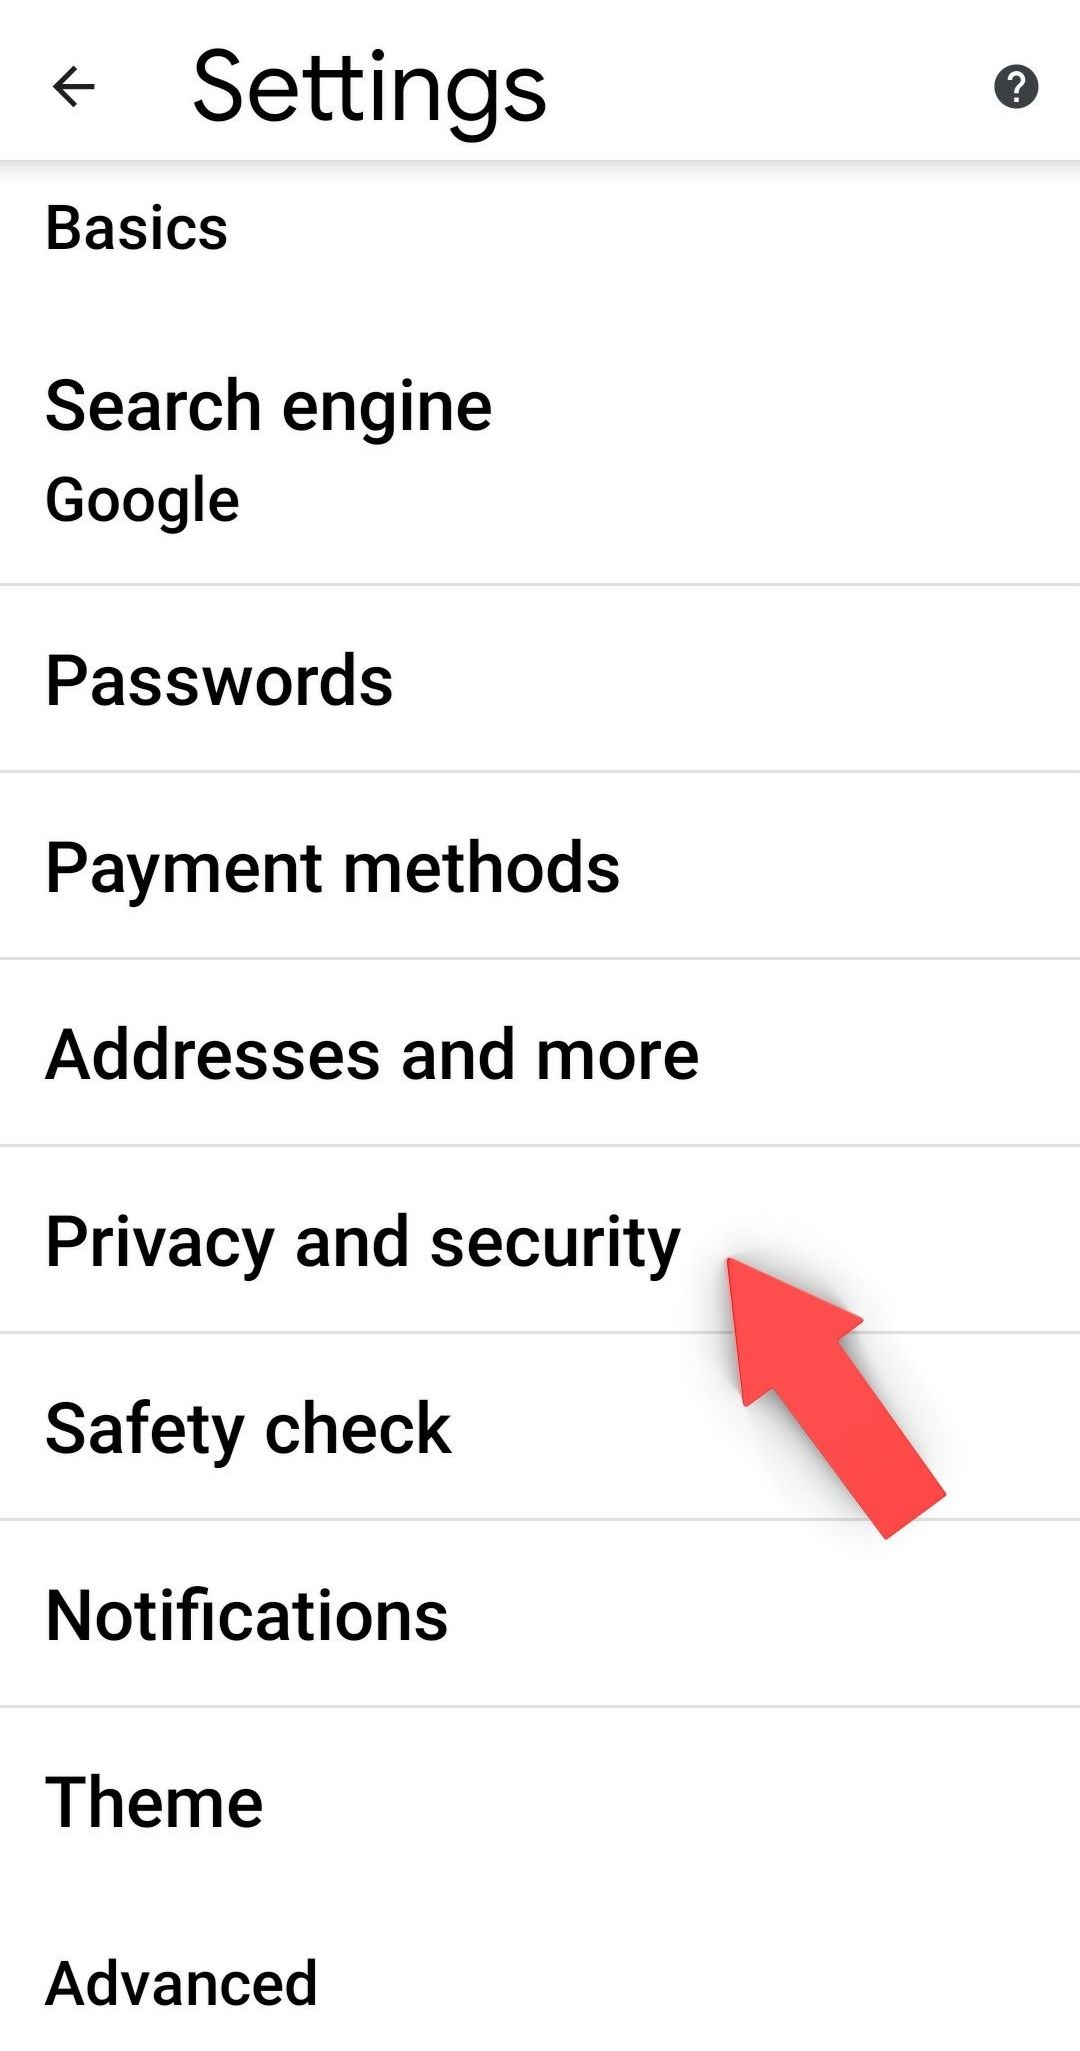 Step 4: Select Privacy and security.